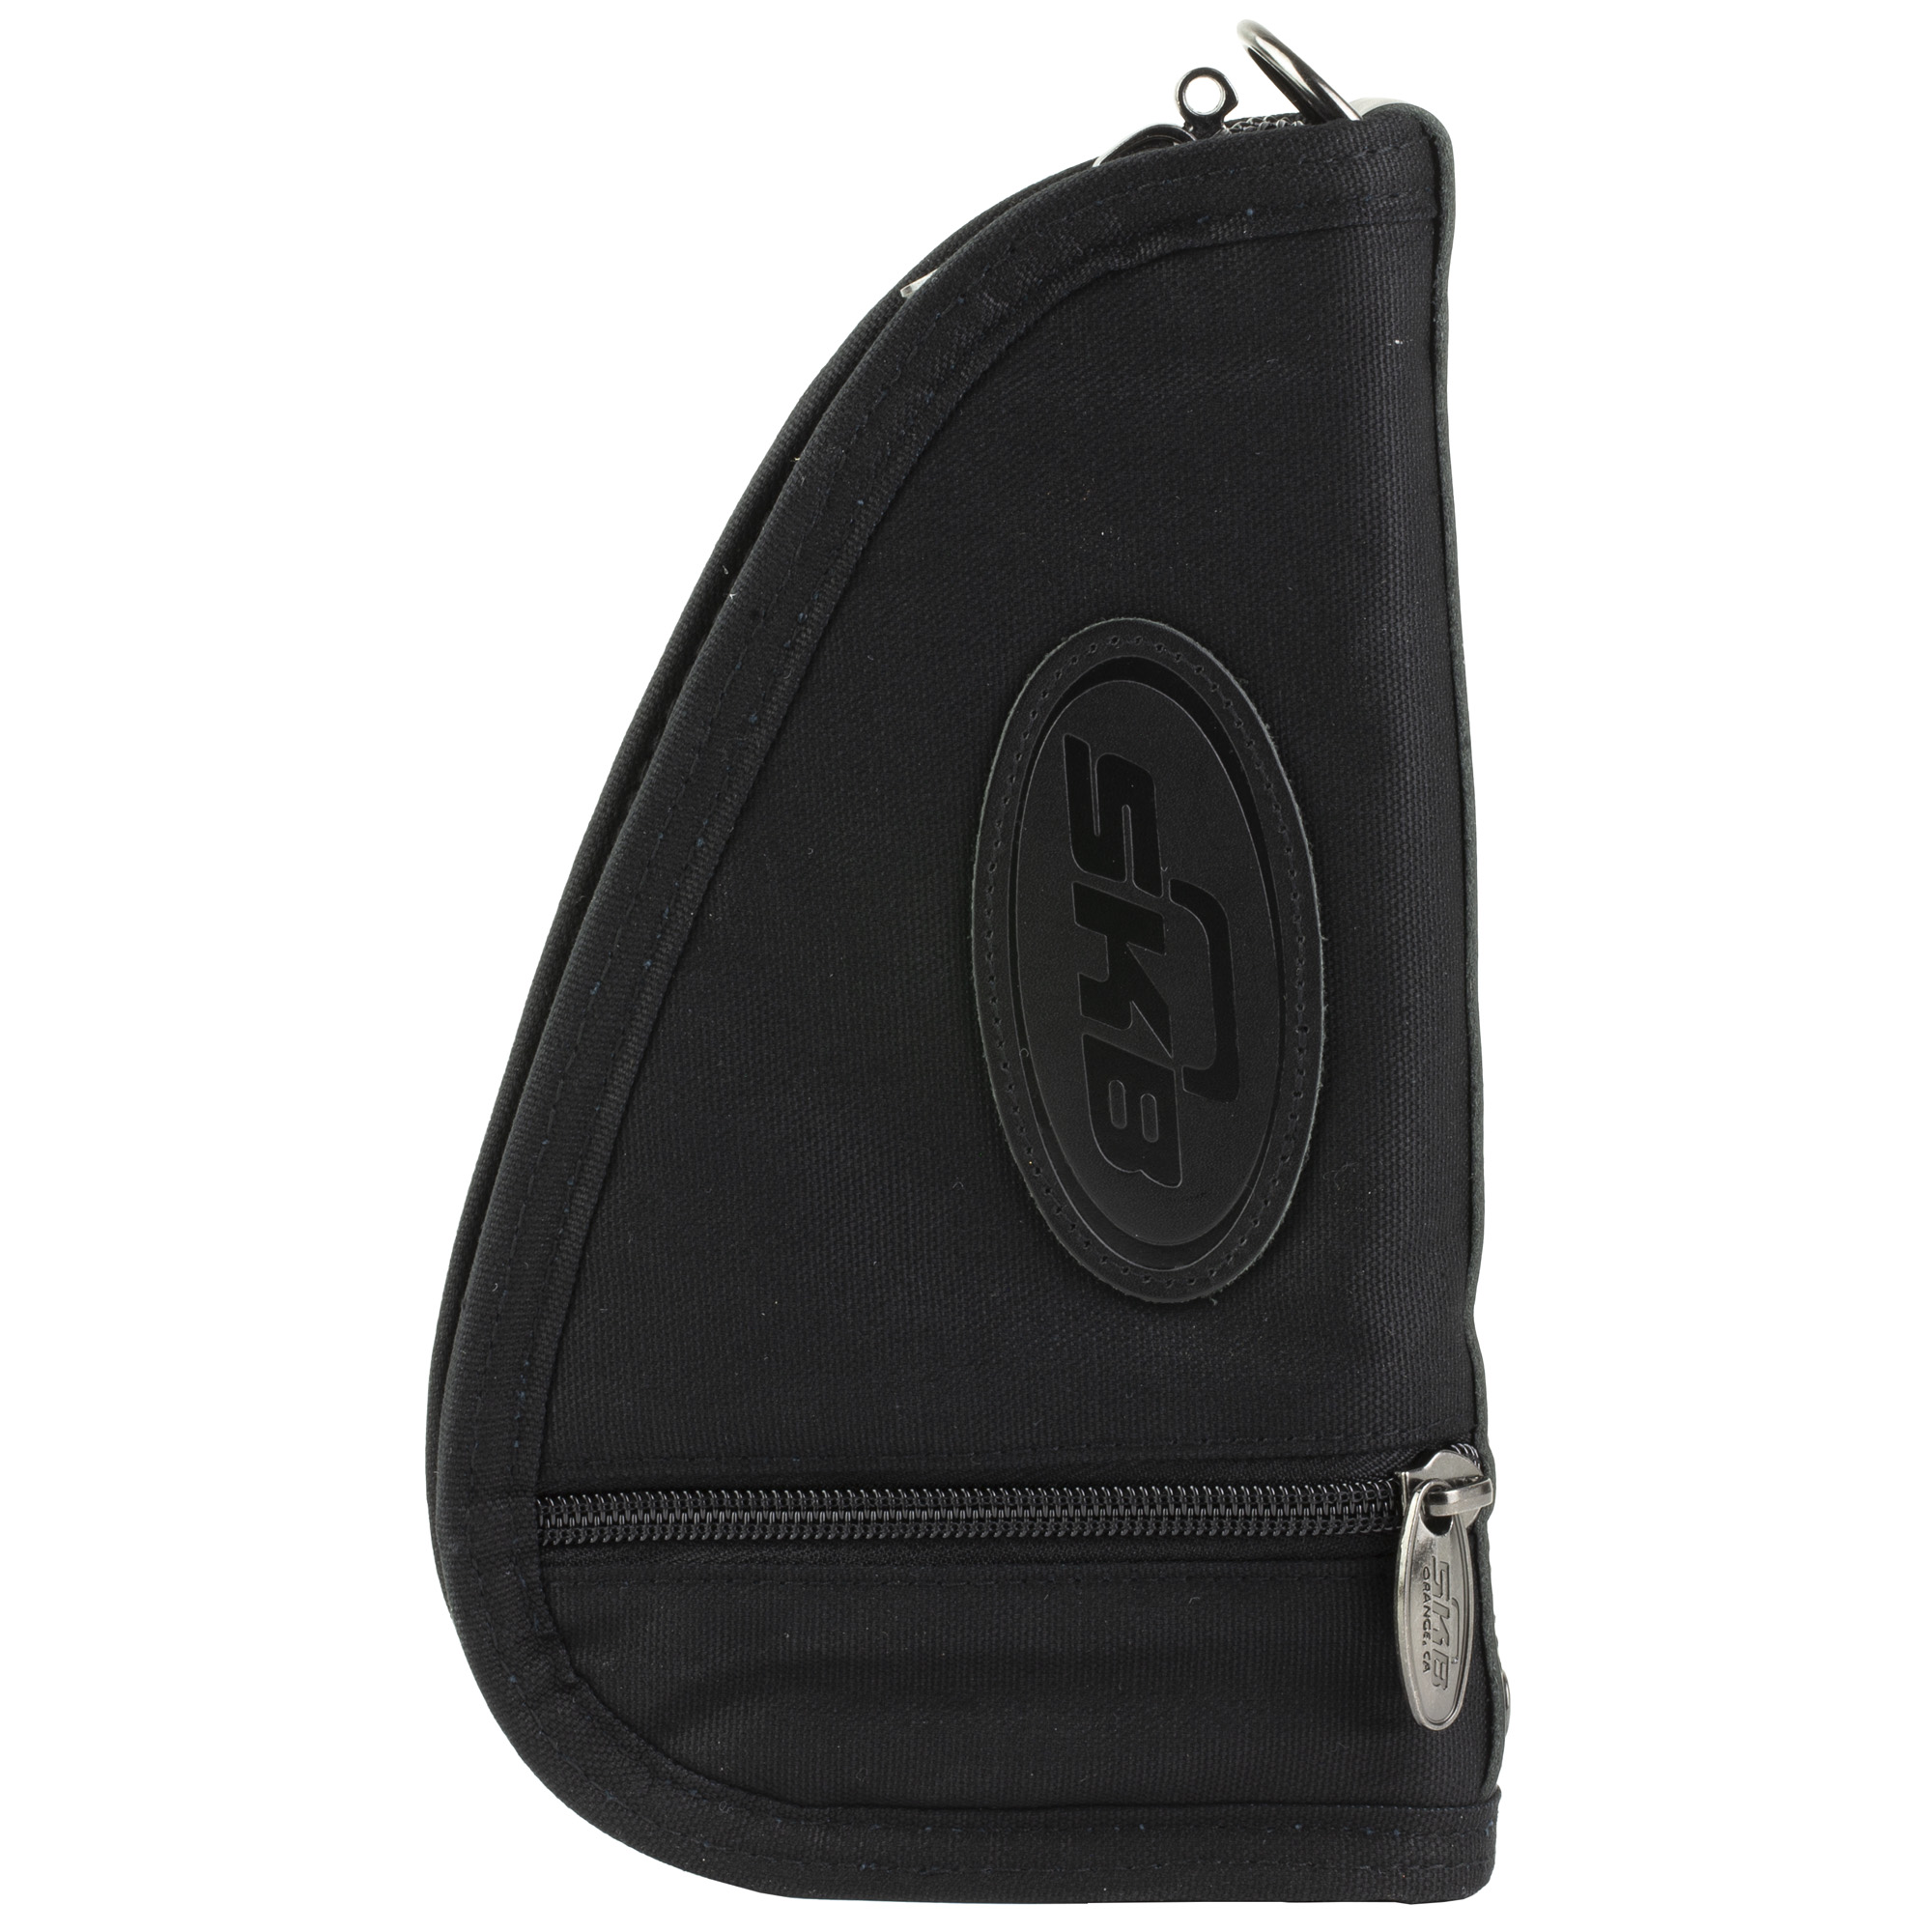 """The SKB Dry-Tek Handgun / Pistol Bags feature the patented """"Dry-Tek Difference"""". The two-layer padding will work in tandem to draw moisture from the inner bag. The inner pad layer enables water to pass through to the outer layer where a remarkable one-way laminate membrane applied to the outer layer allows water molecules to exit the bag"""" but not to enter. The result"""" your gun stays dry!"""